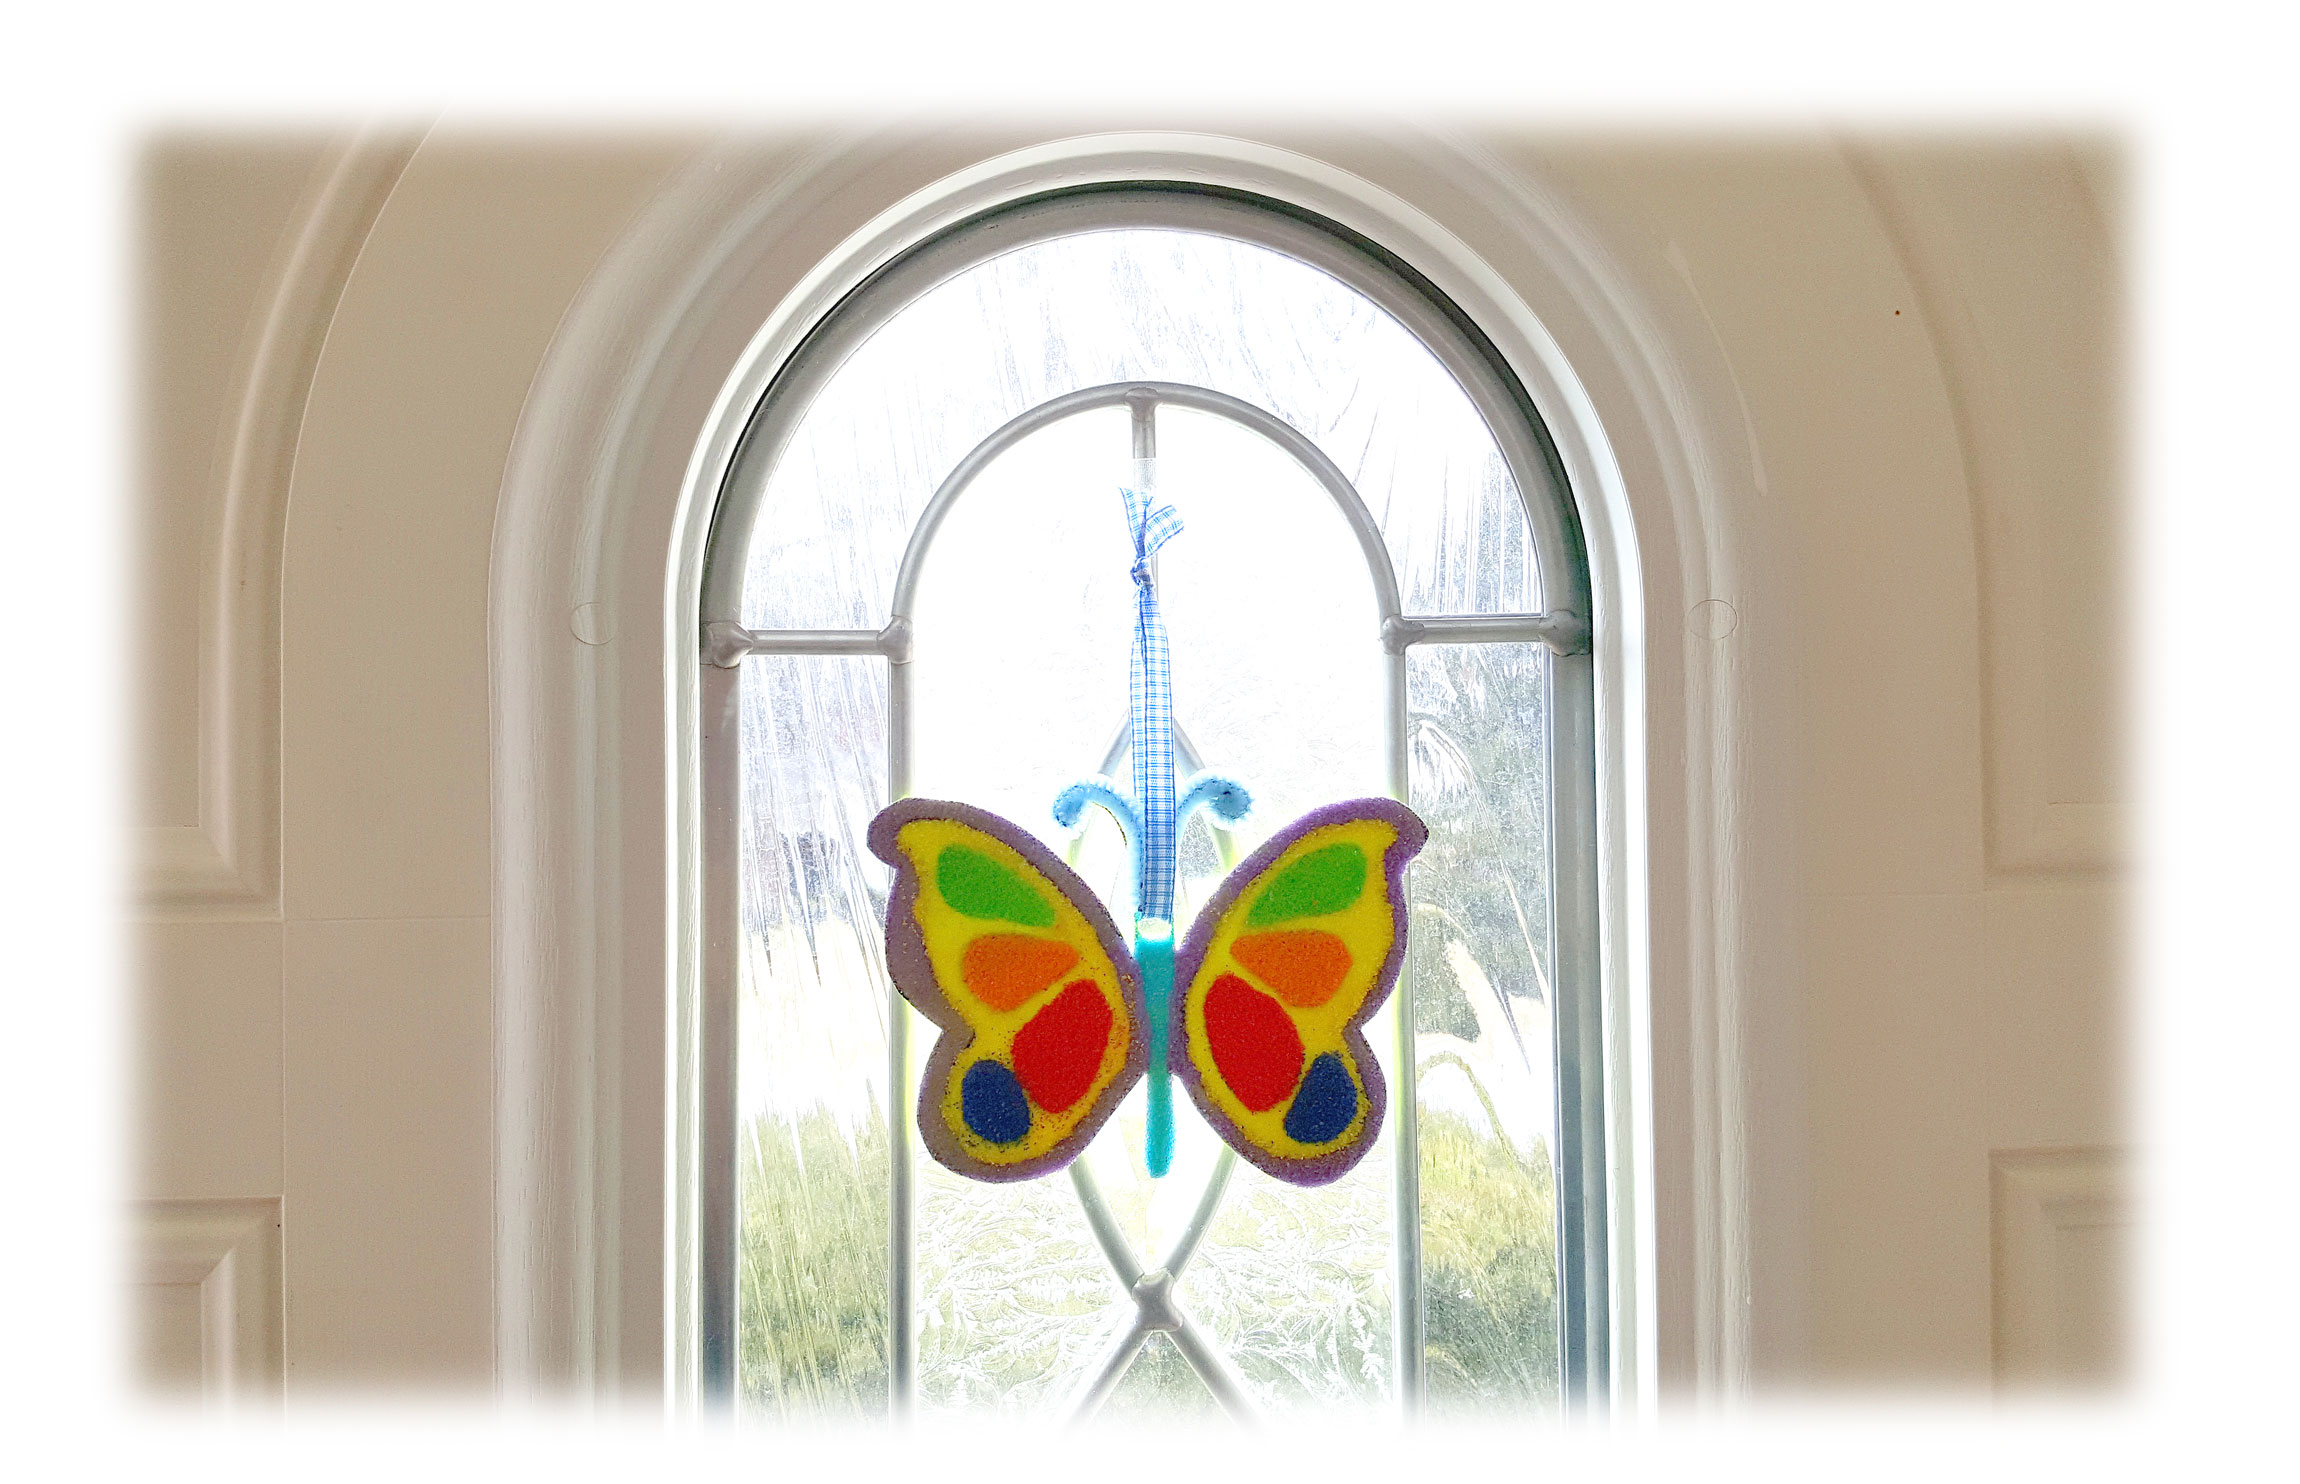 Sand Ornament hung in front of window. | OrnamentShop.com